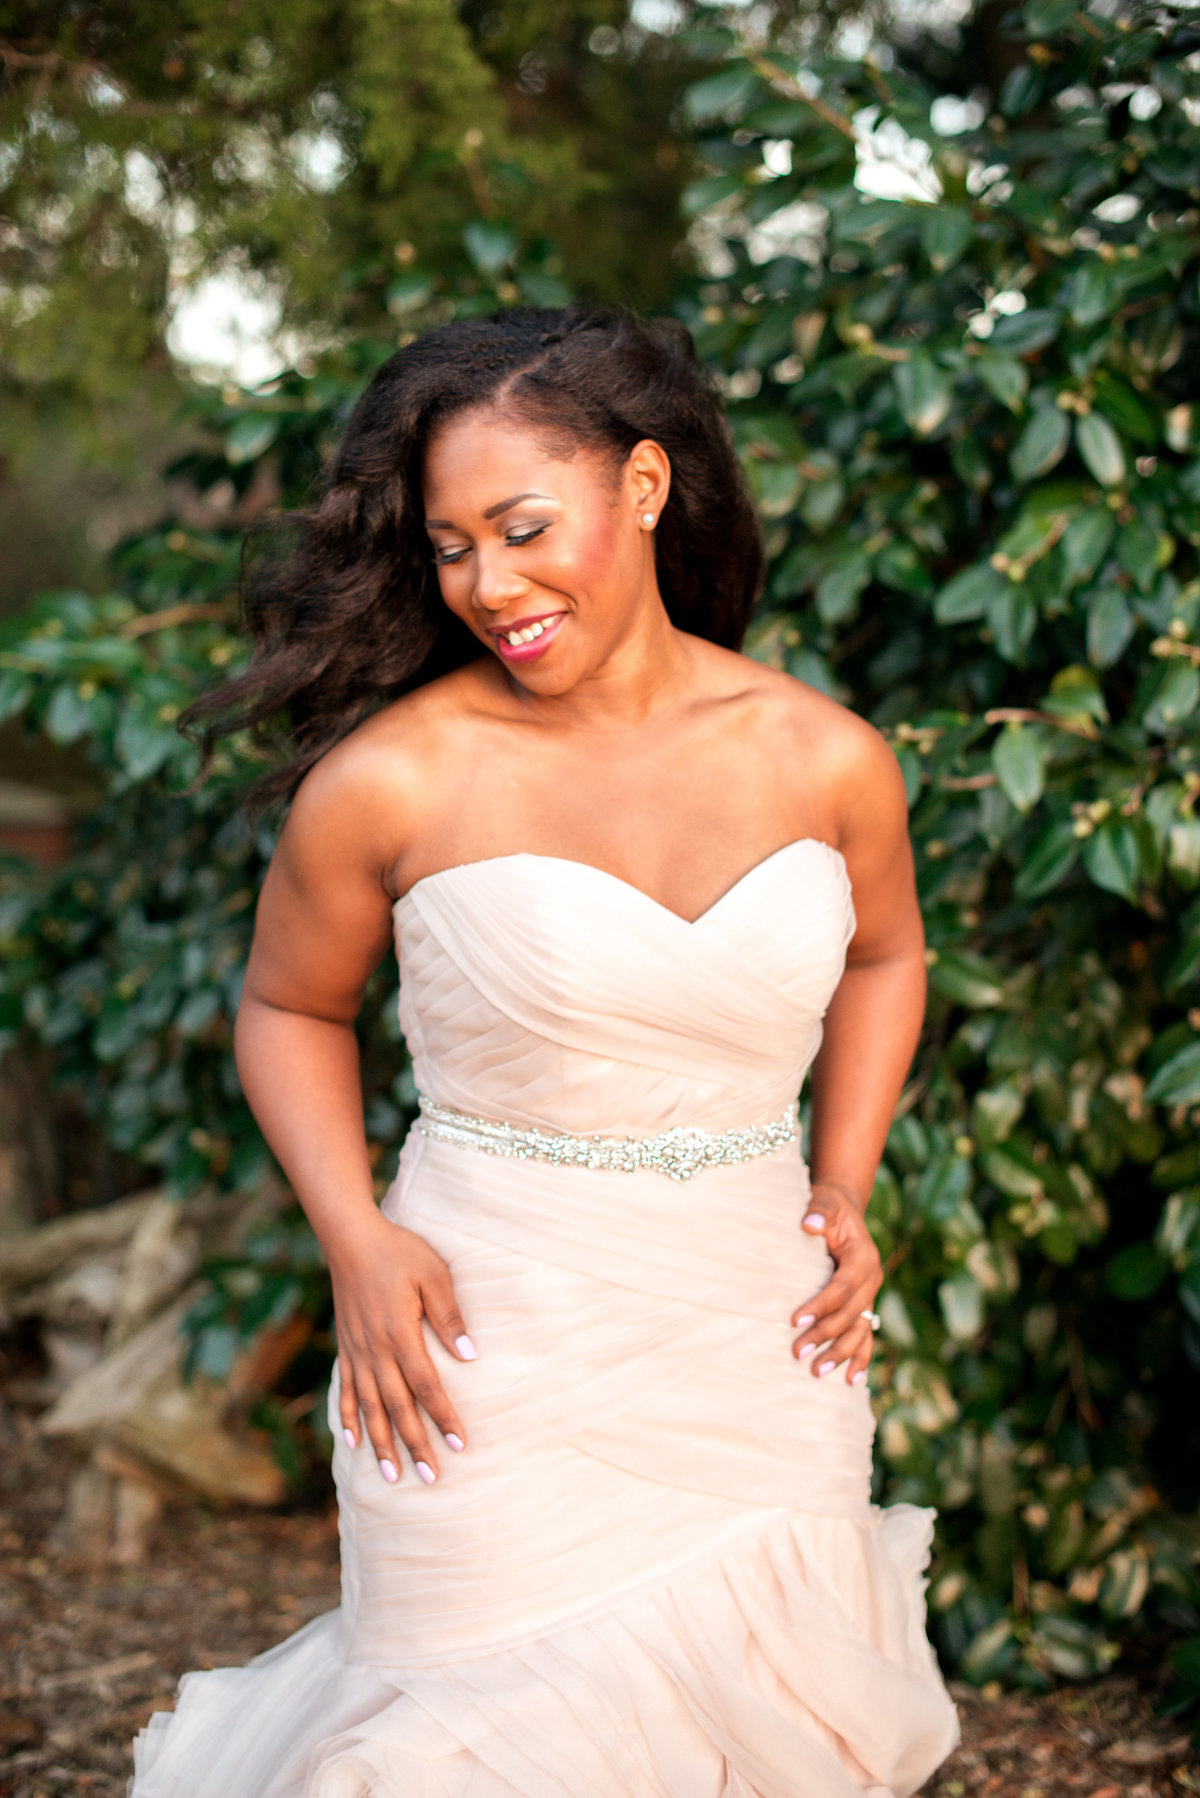 Heart's Content Events - Virginia Maryland DC Wedding and Event Planner - Marriage Coach - Adrienne Rolon - Photo2